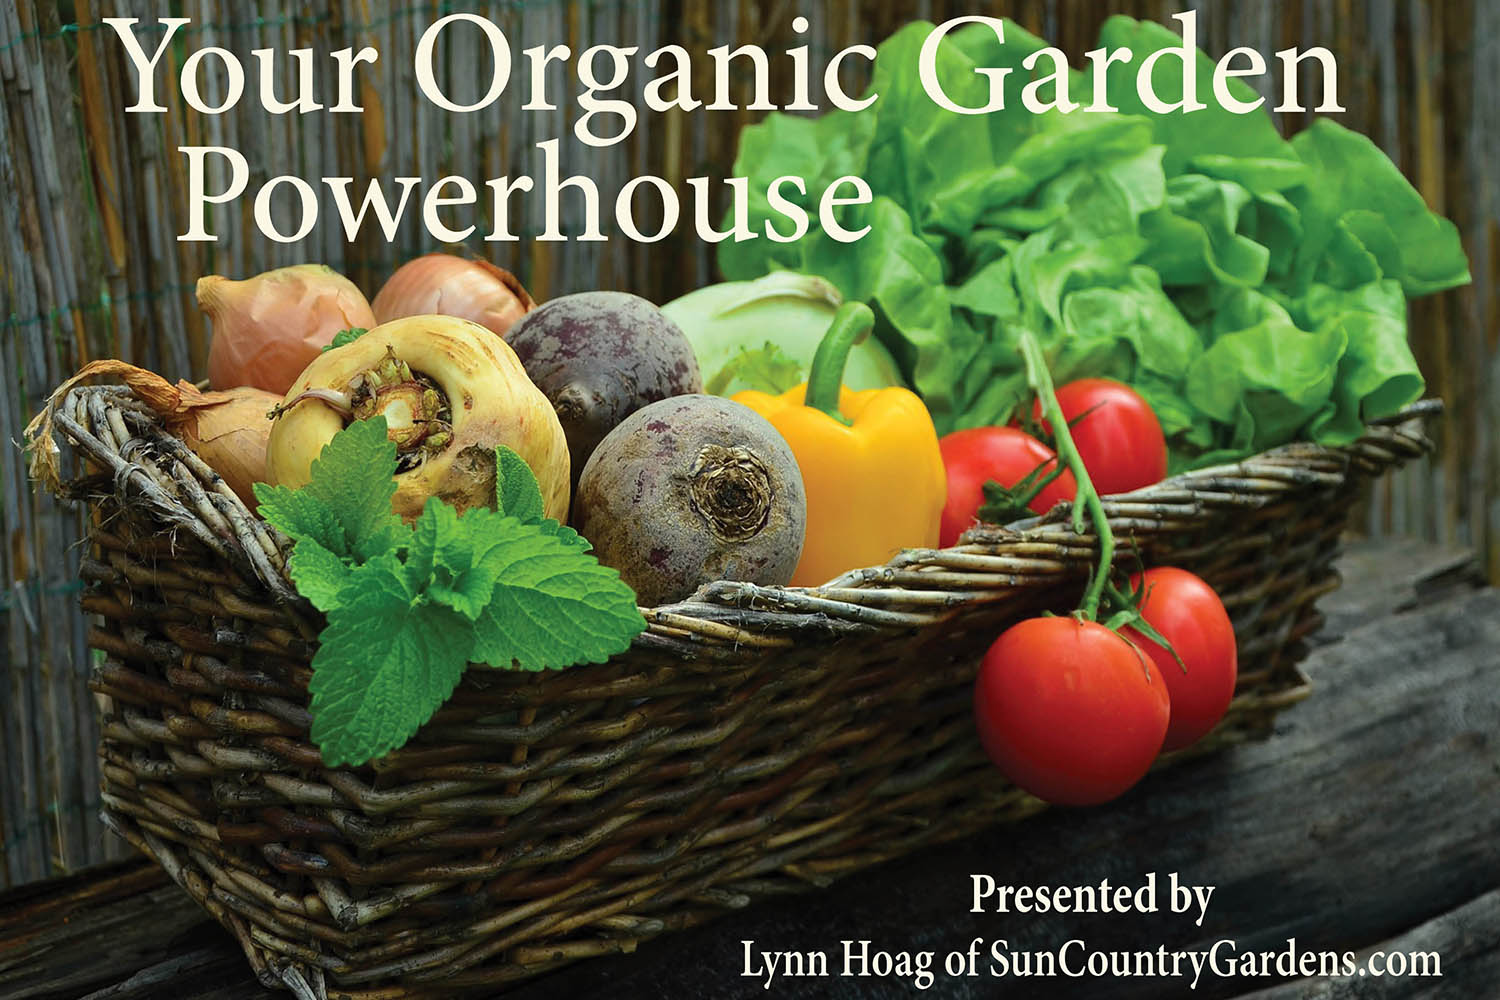 Organic & Biological Gardening Workshop by Lynn Hoag